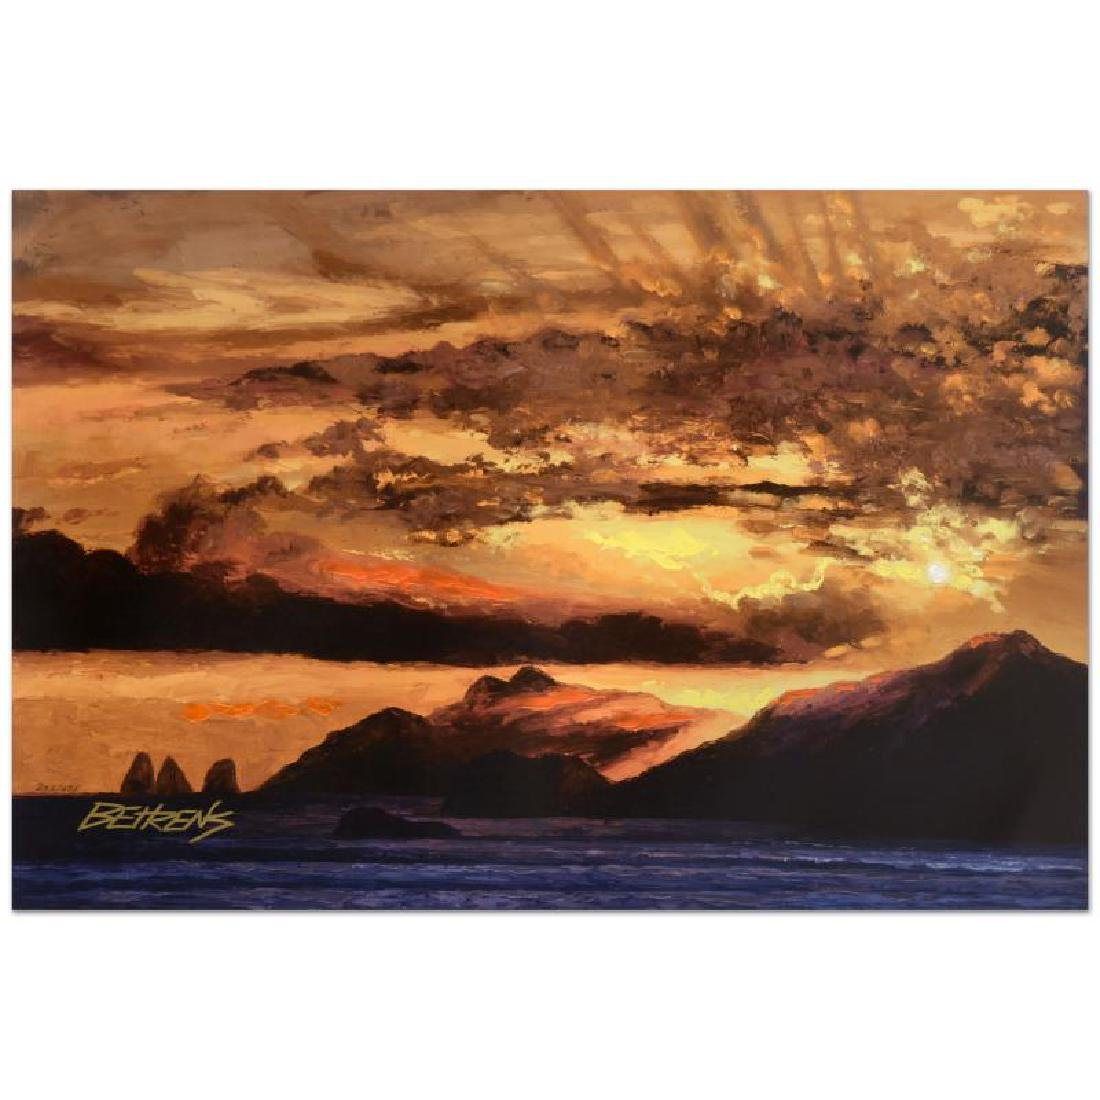 Sunset Over Capri by Behrens (1933-2014)